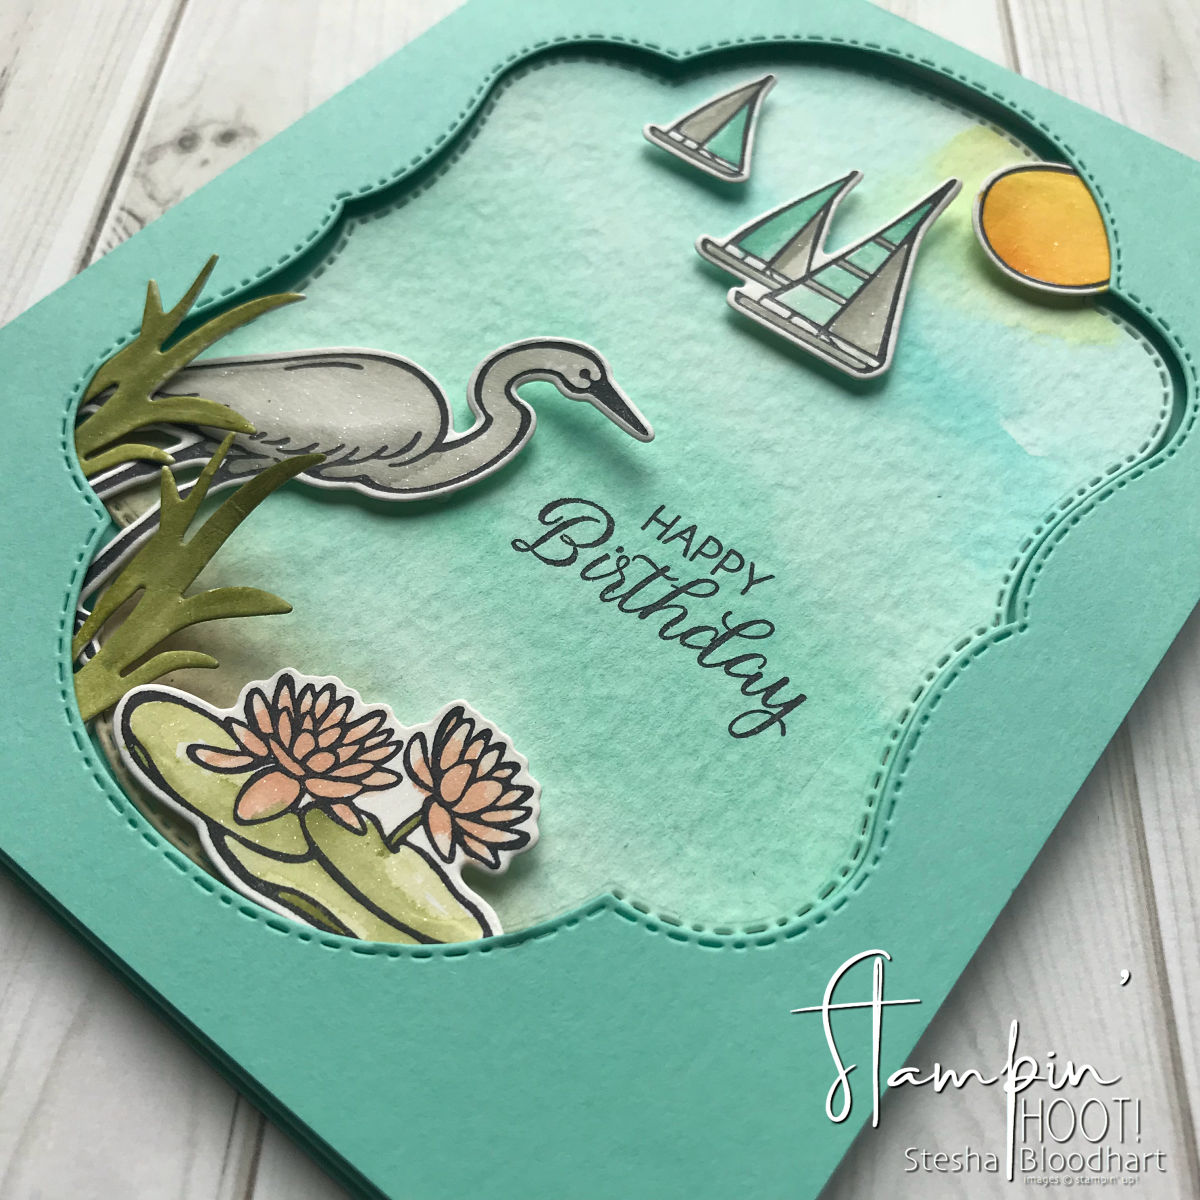 Lilypad Lake Bundle by Stampin' Up! Handmade Birthday Card created by Stesha Bloodhart, Stampin' Hoot! for Pals Blog Hop August 2018 #steshabloodhart #stampinhoot